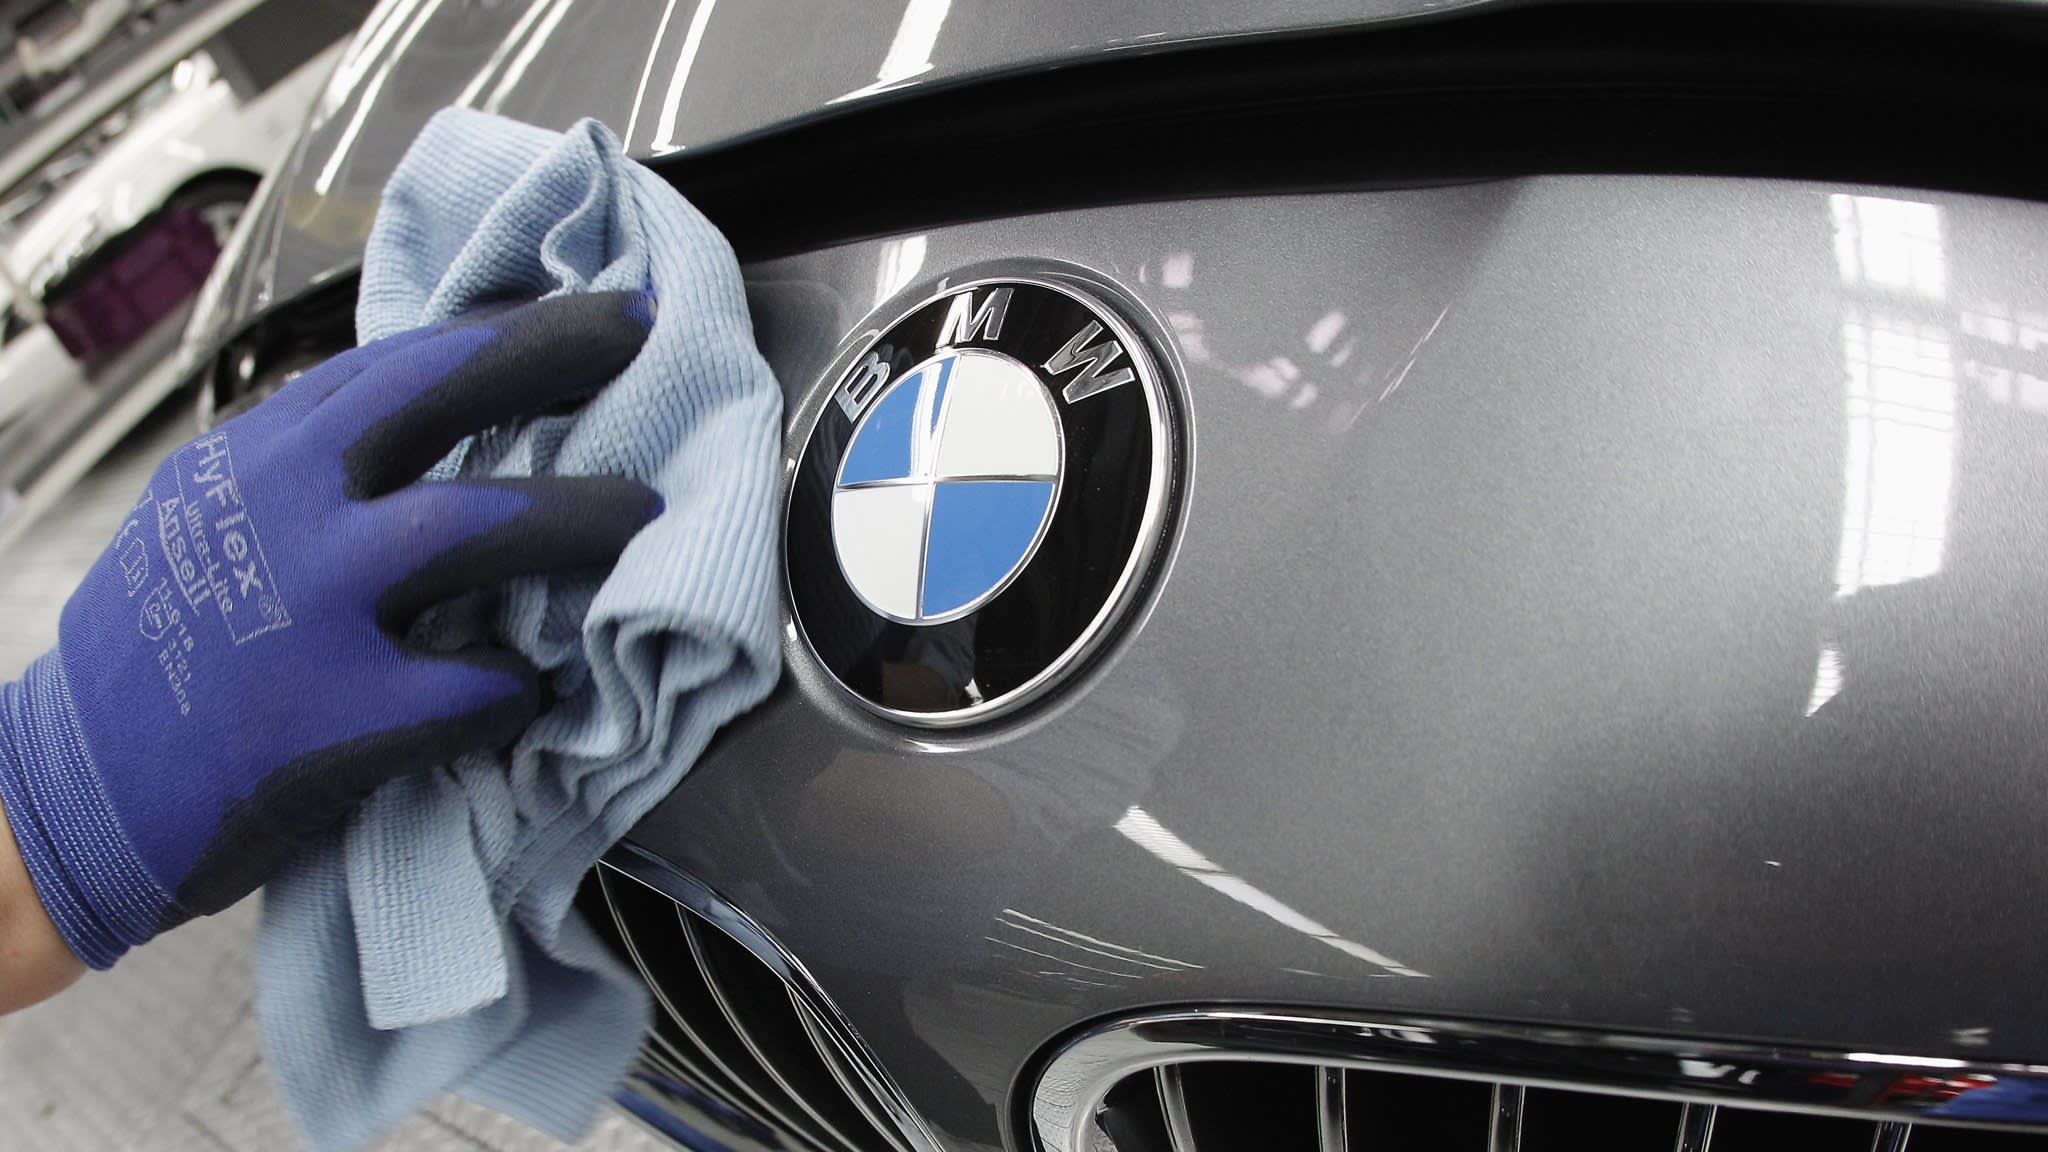 BMW raises prices as trade war hits consumers